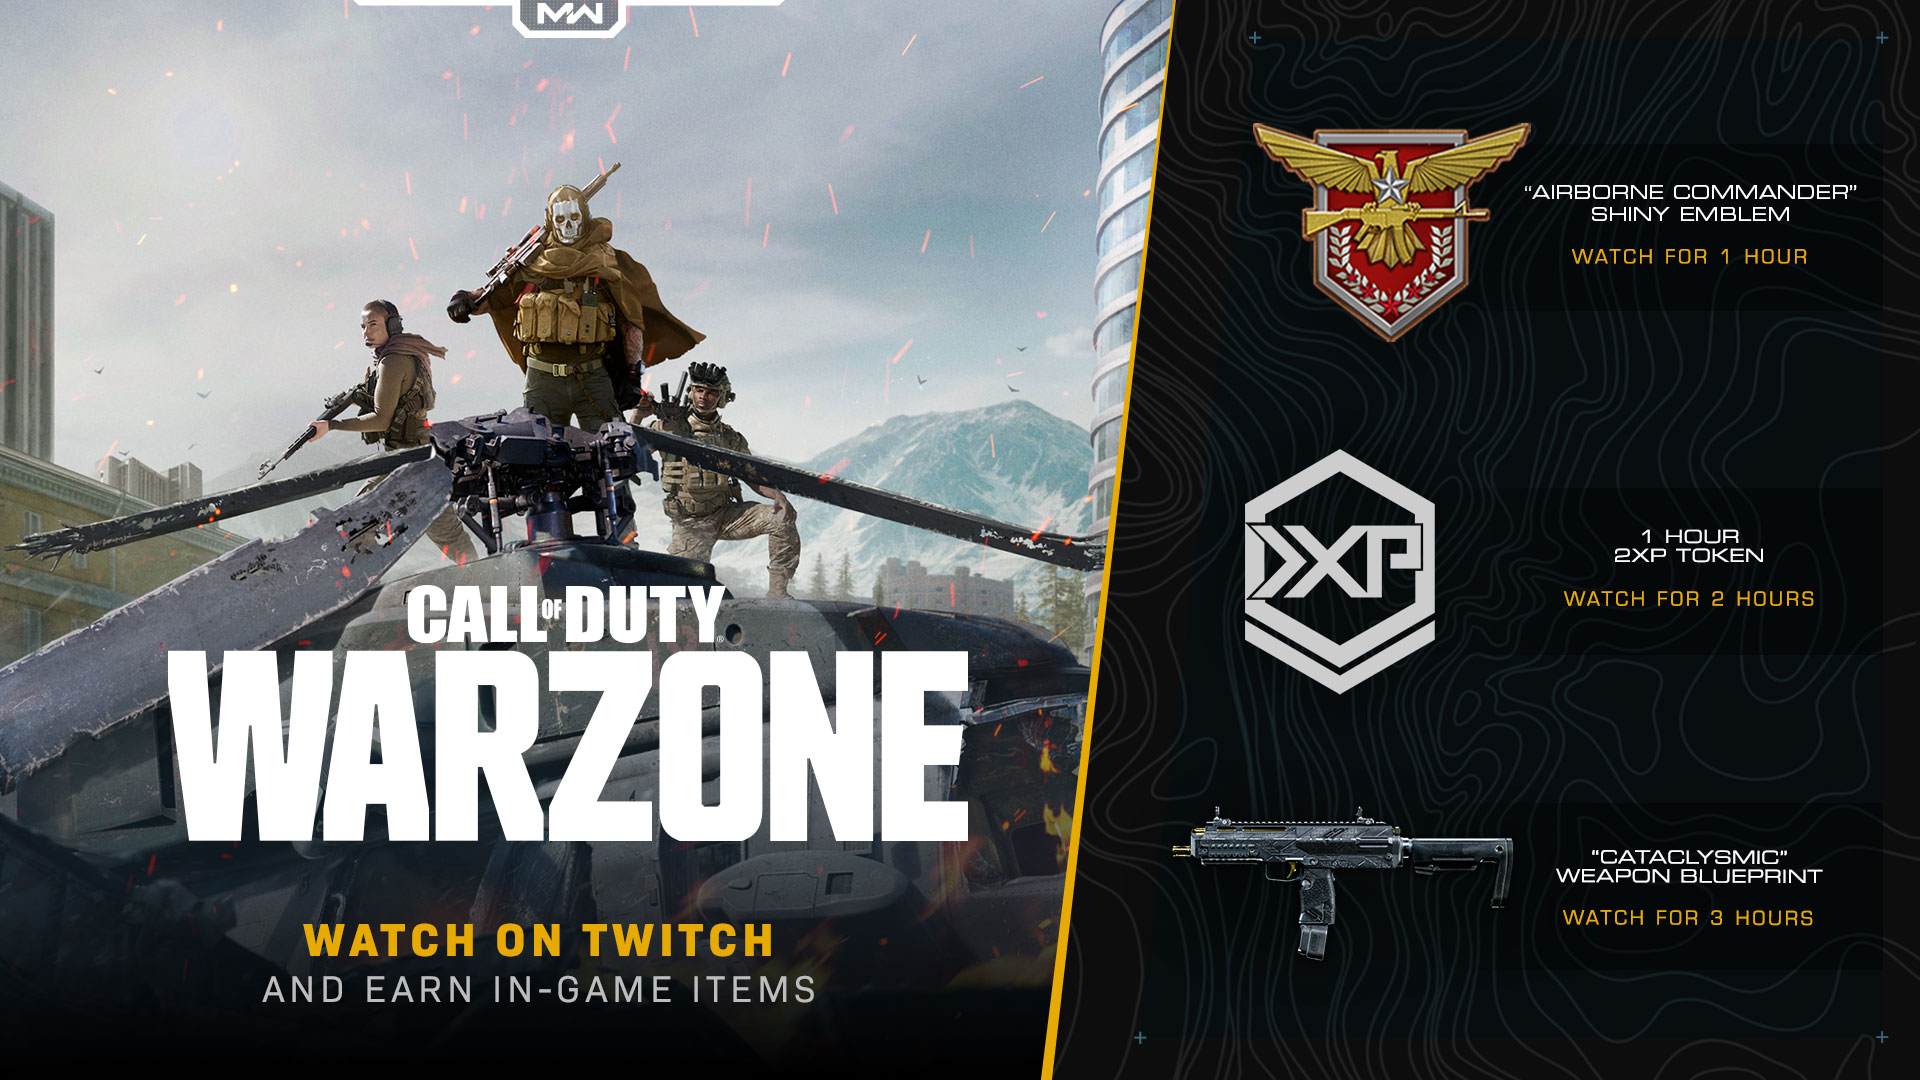 Earn Rewards to equip in Modern Warfare® Multiplayer, Special Ops, and Warzone by Watching Twitch [Update - Event Extended!] - Image 1